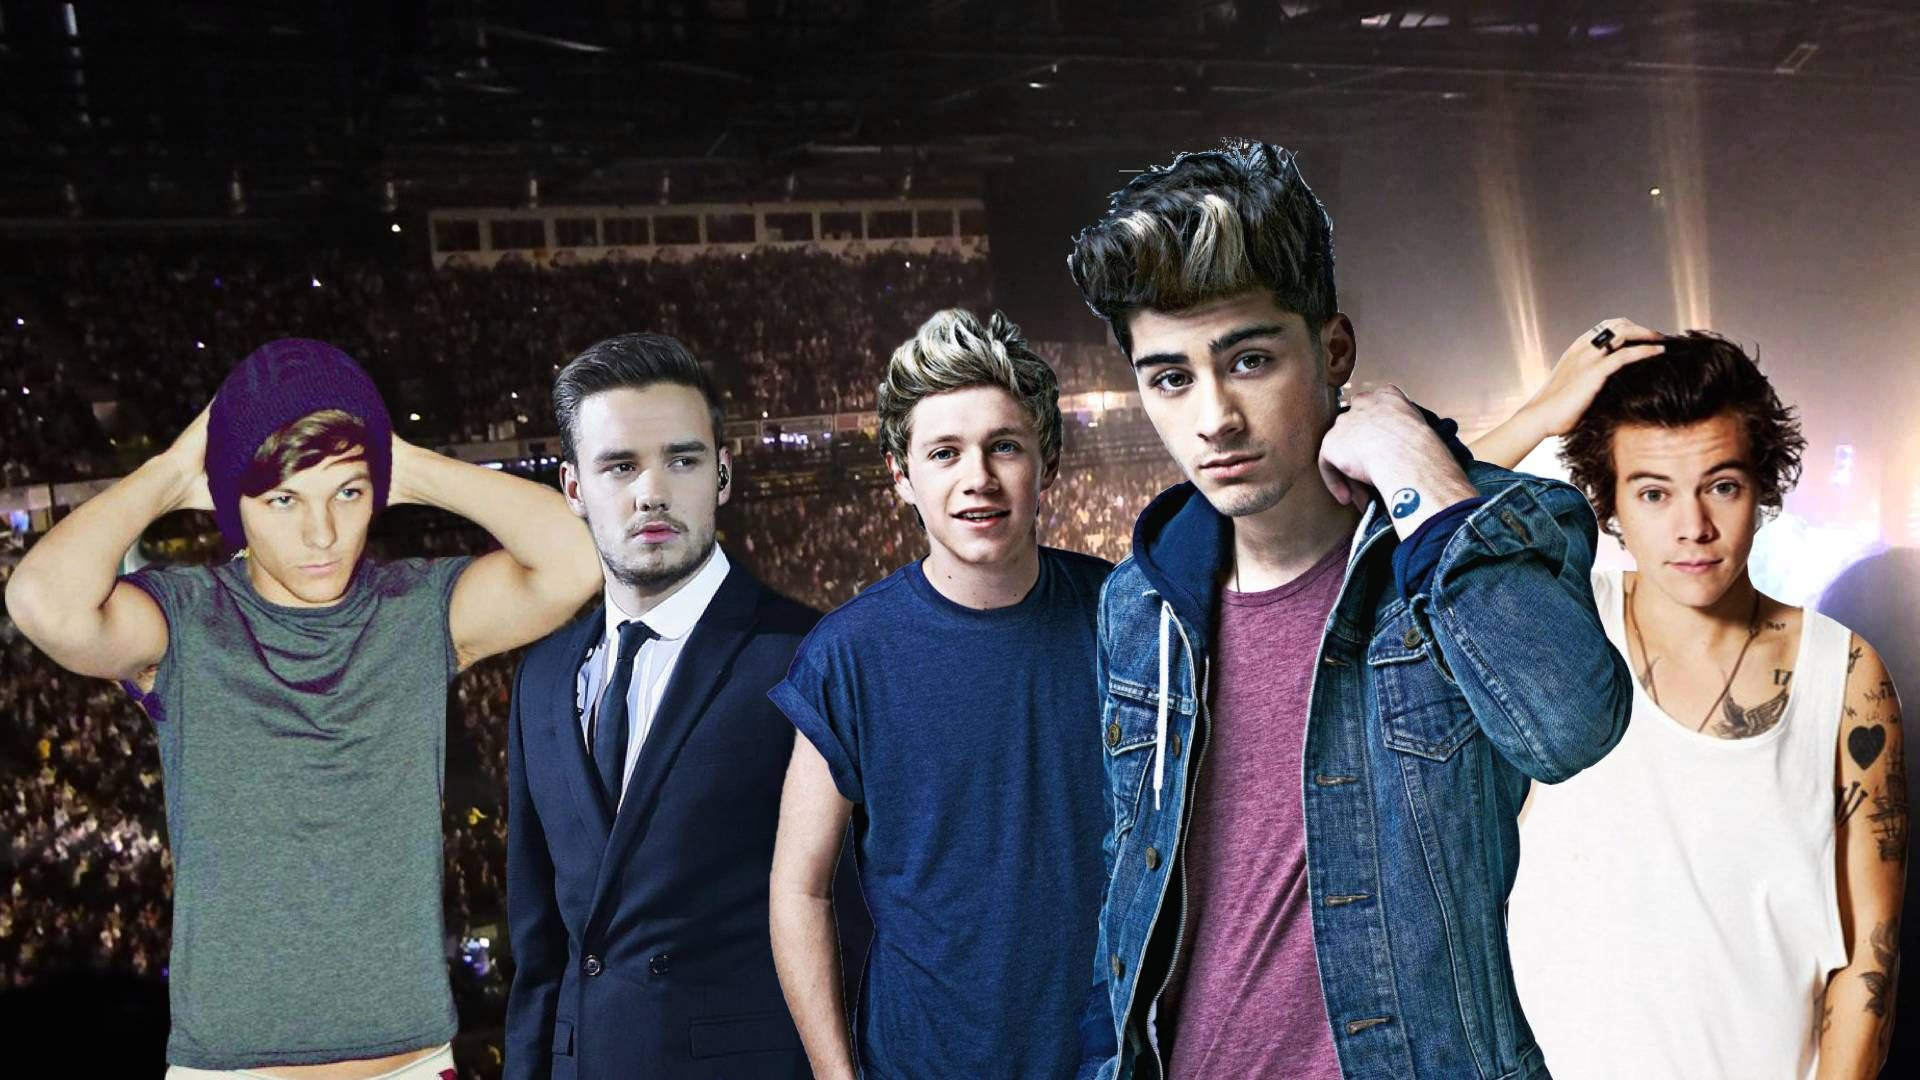 Zayn Malik, Th Of The Enormously Popular Singing Group One Direction